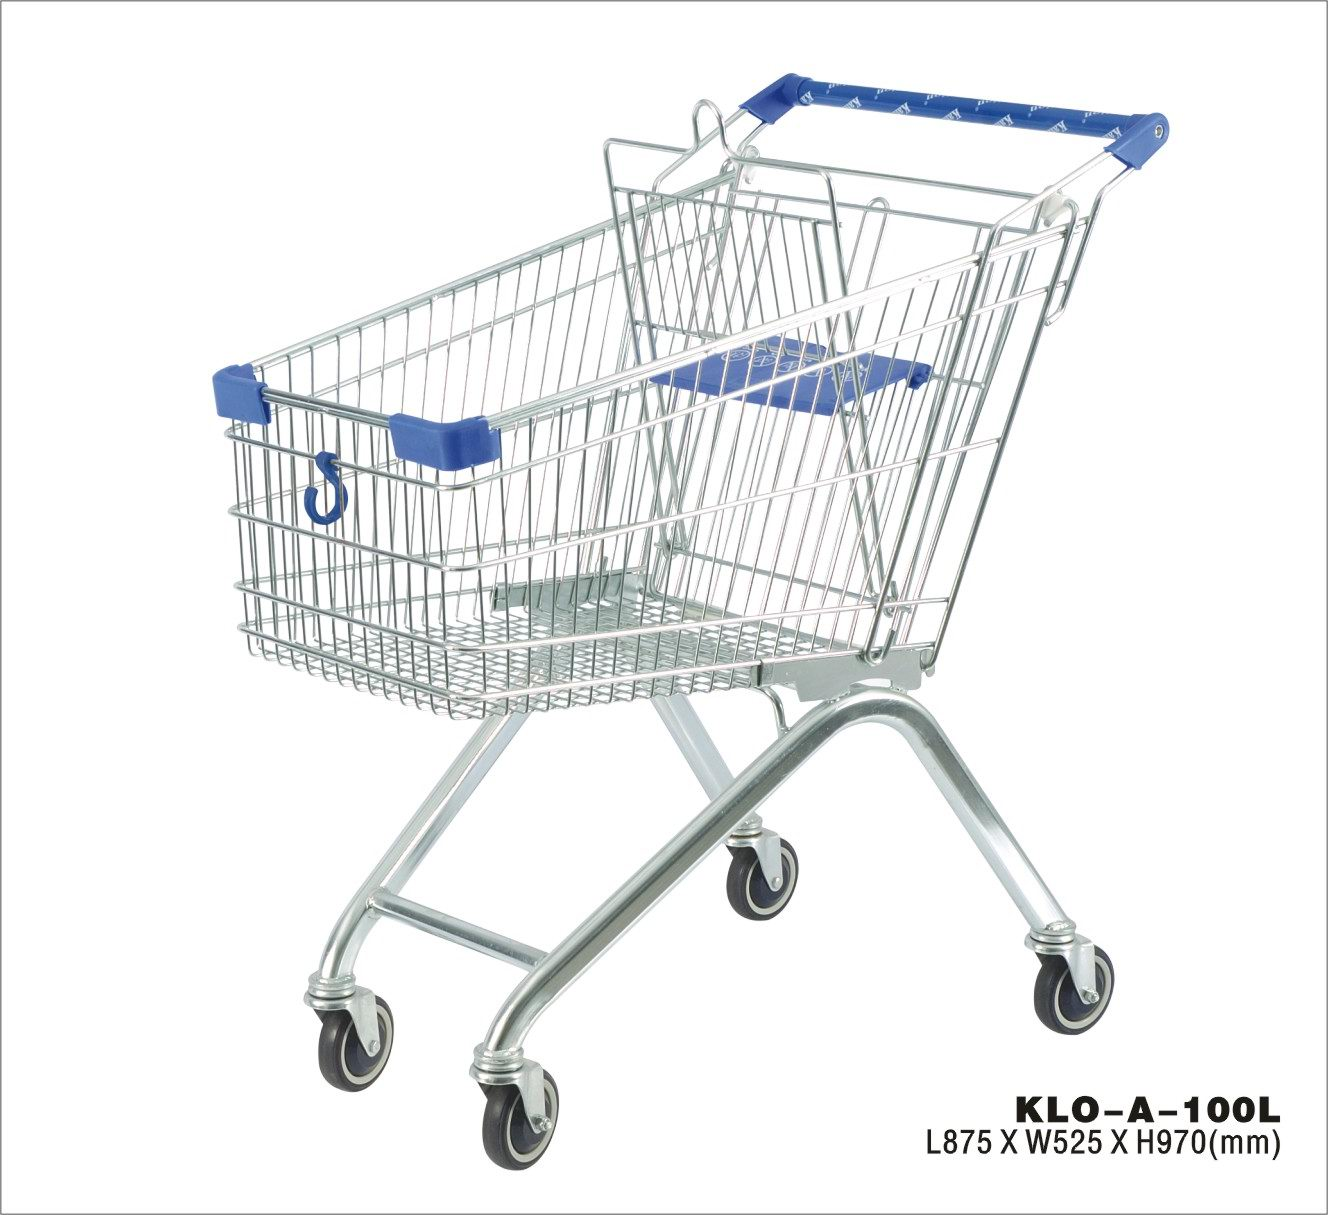 shopping trolley - KLO-A-100L